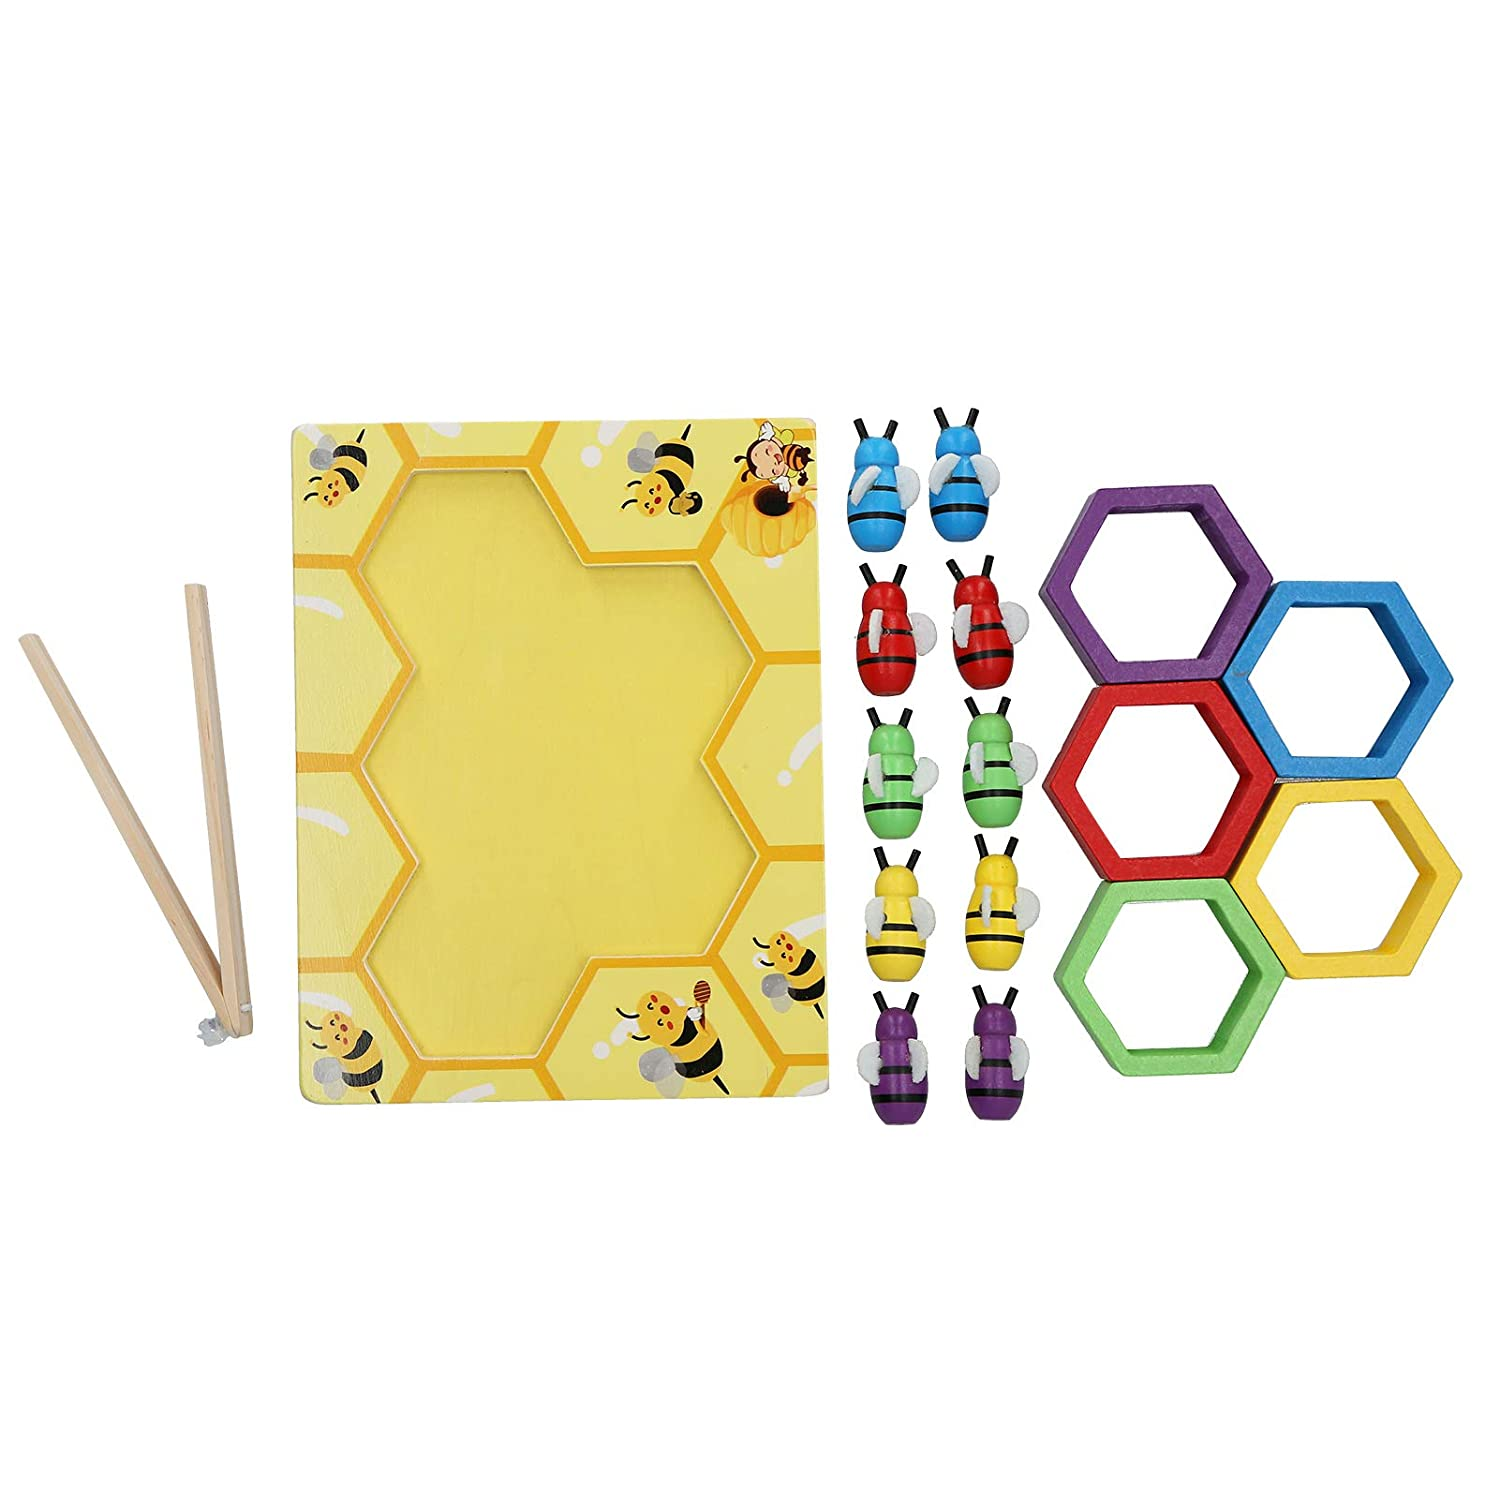 Wooden Bee Game Toy Infant 1 year warranty Boy Durable Matching Max 55% OFF for Sturdy